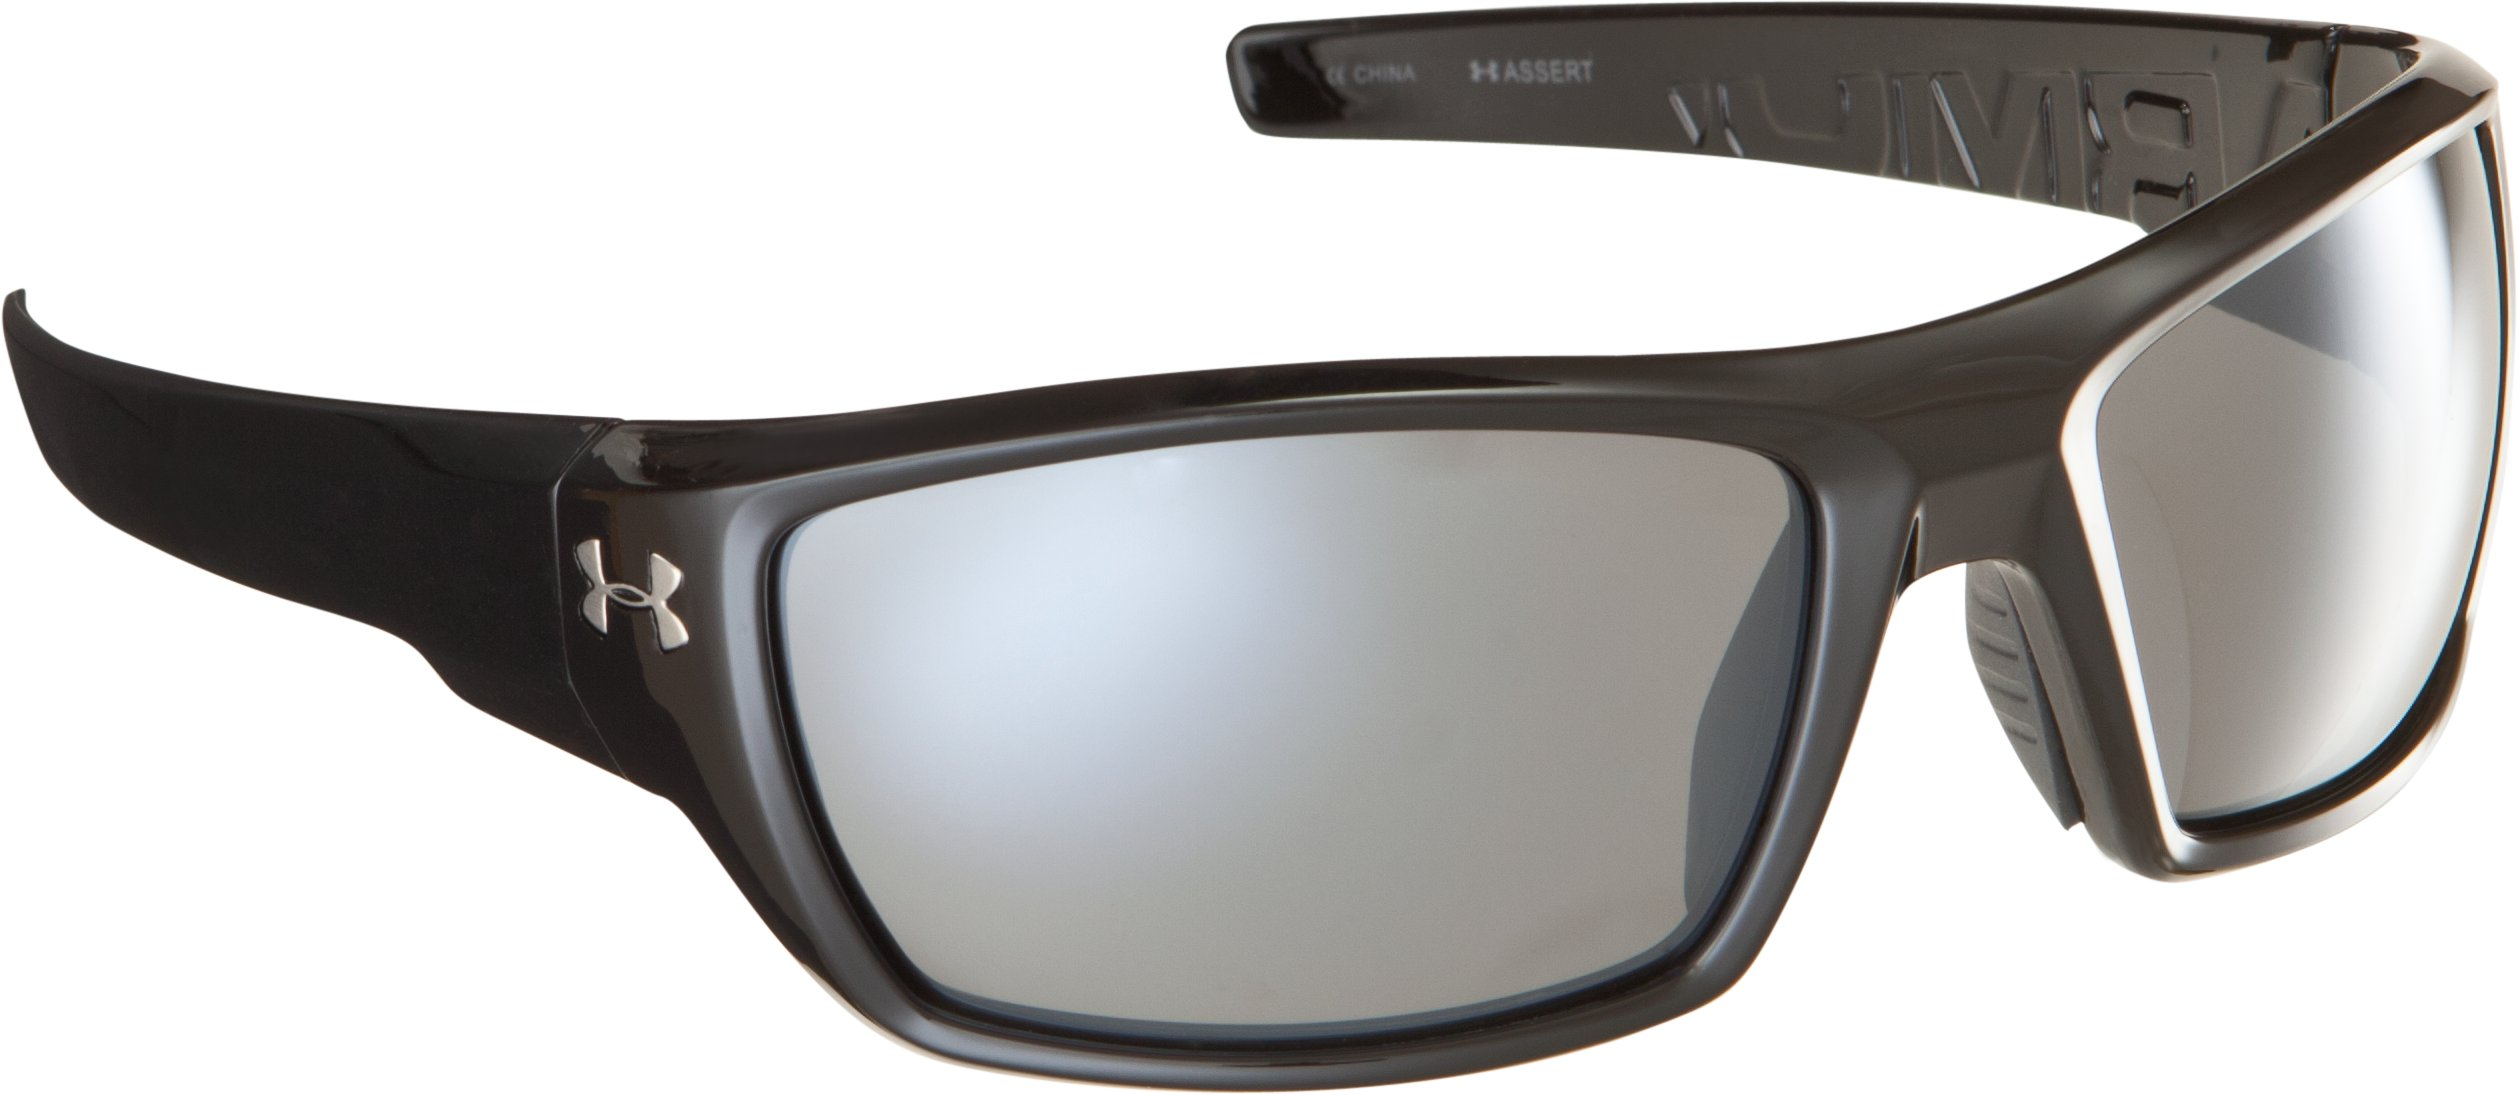 UA Assert Sunglasses, Shiny Black